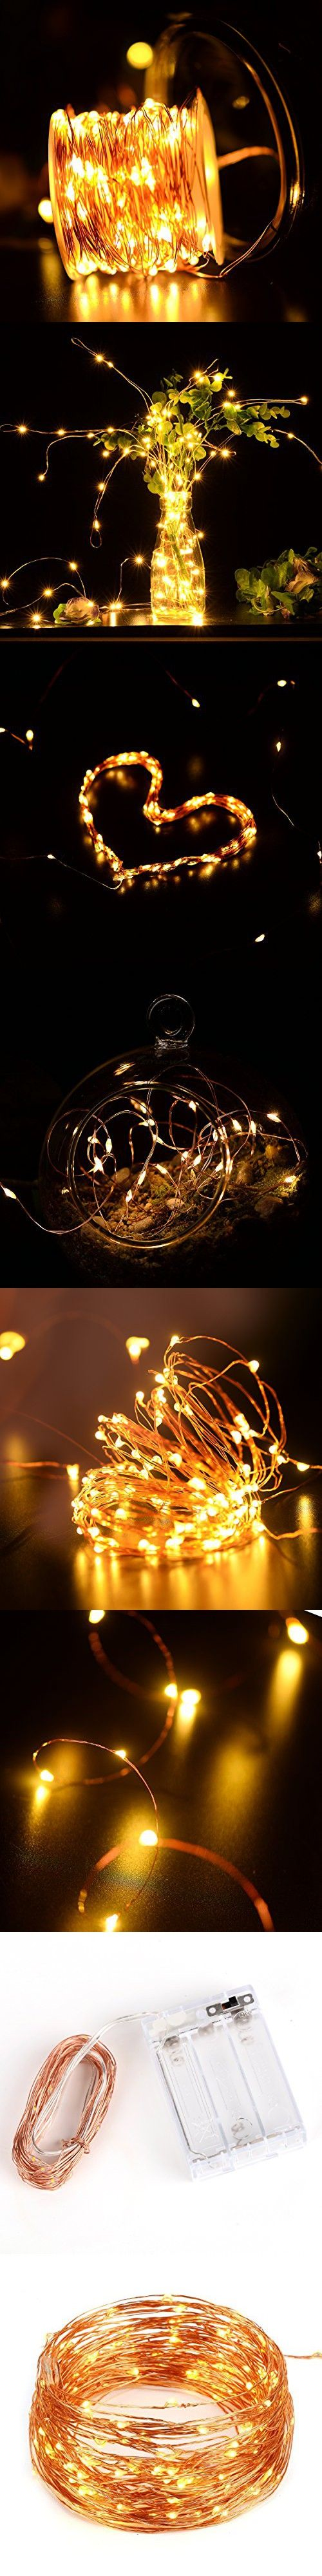 Copper Wire Light Strings, LTROP 33ft 100 LED Battery Powered Starry String Lights, Ambiance Lighting Décor Rope Light for Outdoor, Garden, Home, Party, Christmas (Battery Not Included)-Warm White